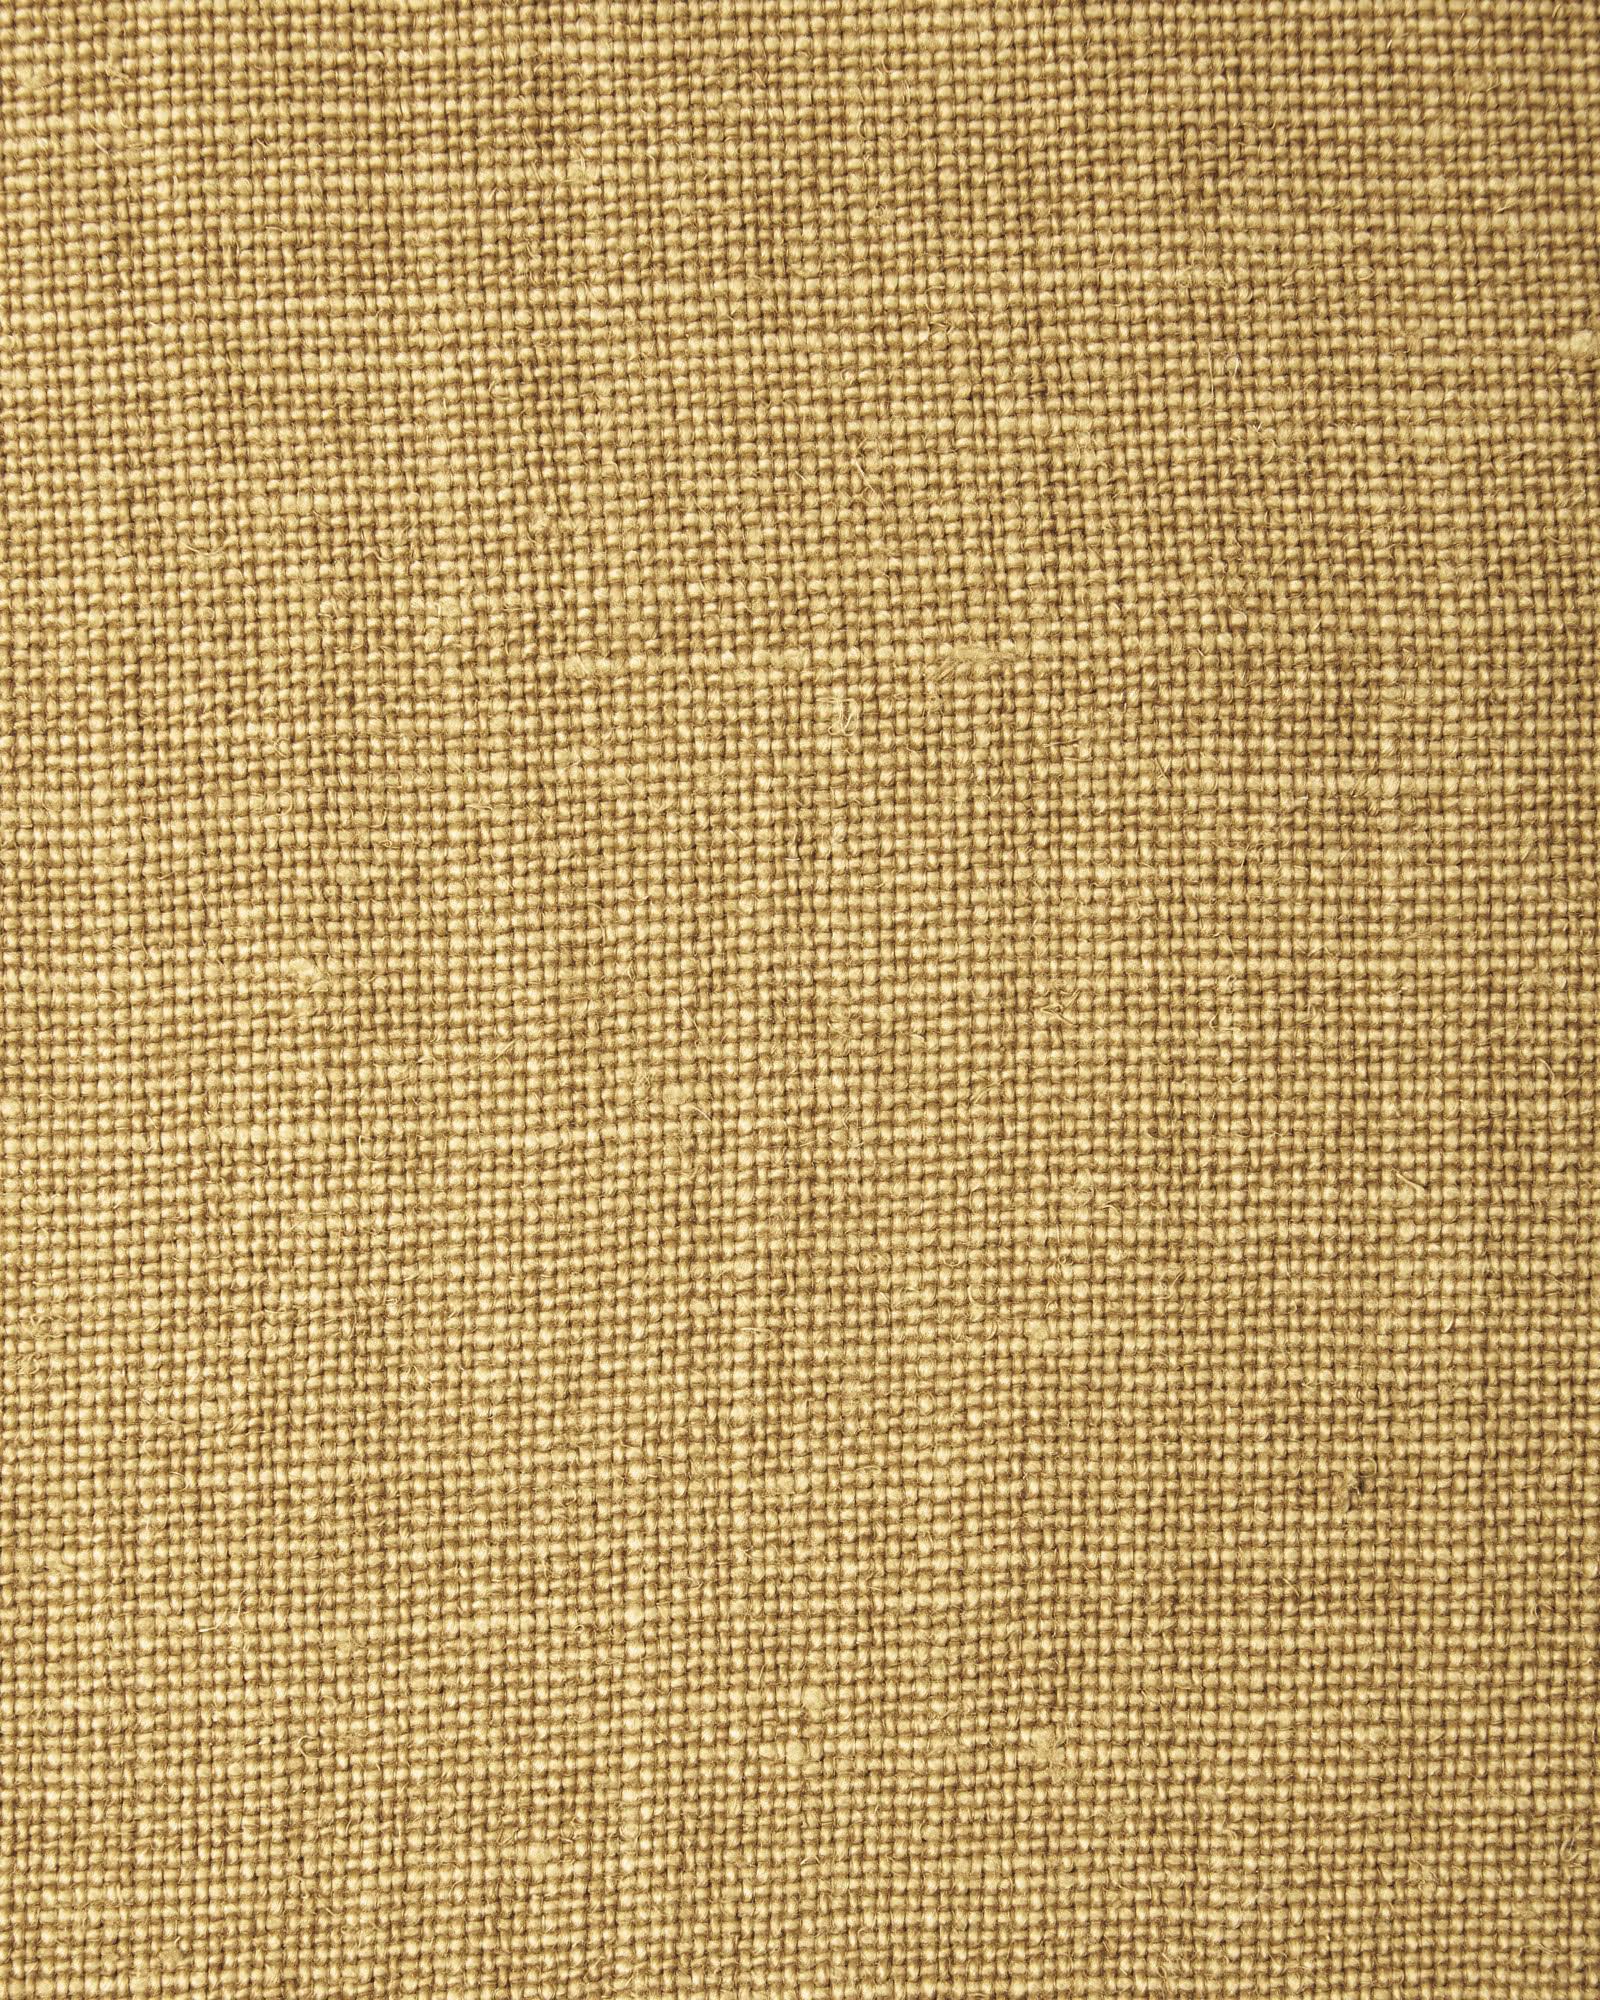 Washed Linen - Gold,